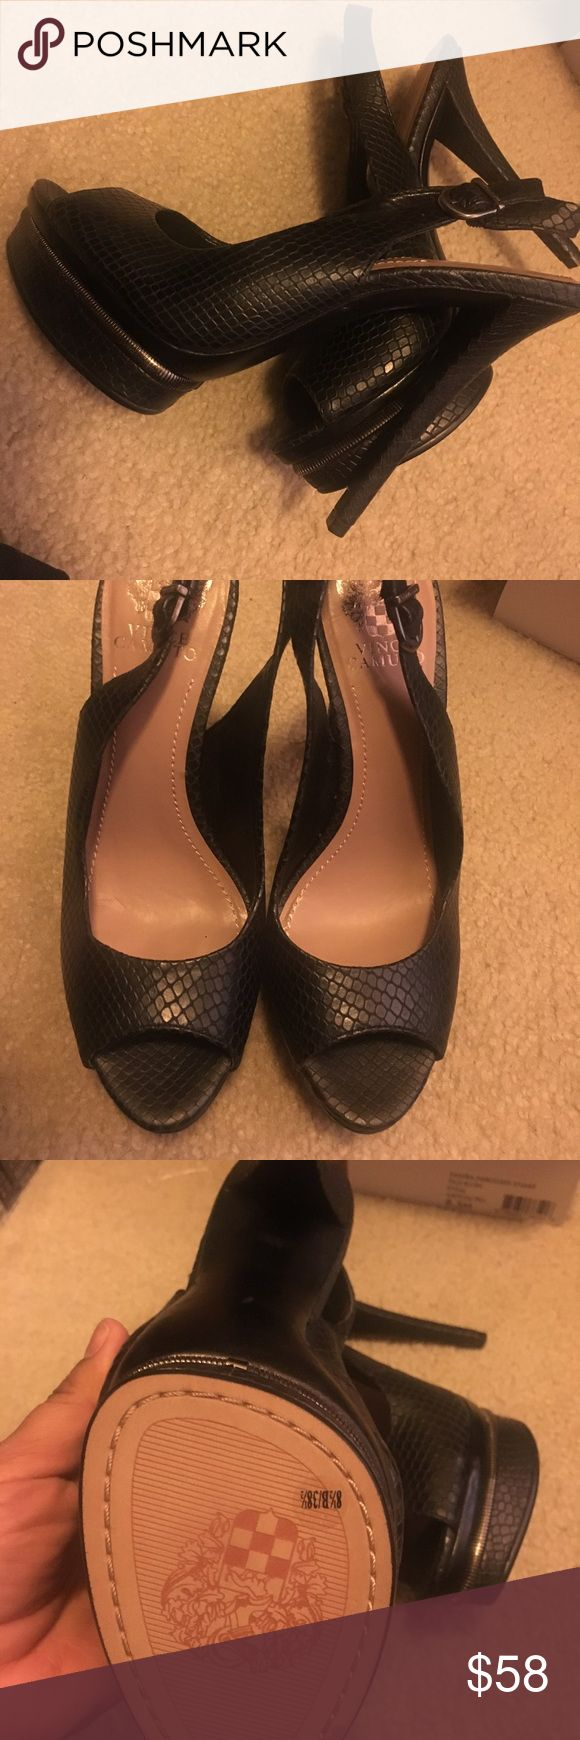 """Vince Camuto Heels Vince Camuto 'Rivka' Slingback Pump Size 8.5 Brand new comes with Box Edgy zipper teeth trim the recessed platform of a snake-embossed leather slingback pump with a flirty open toe. Adjustable strap with buckle closure. Approx. heel height: 5"""" with 1"""" platform (comparable to a 4"""" heel). Leather upper/synthetic lining and sole. Vince Camuto Shoes"""